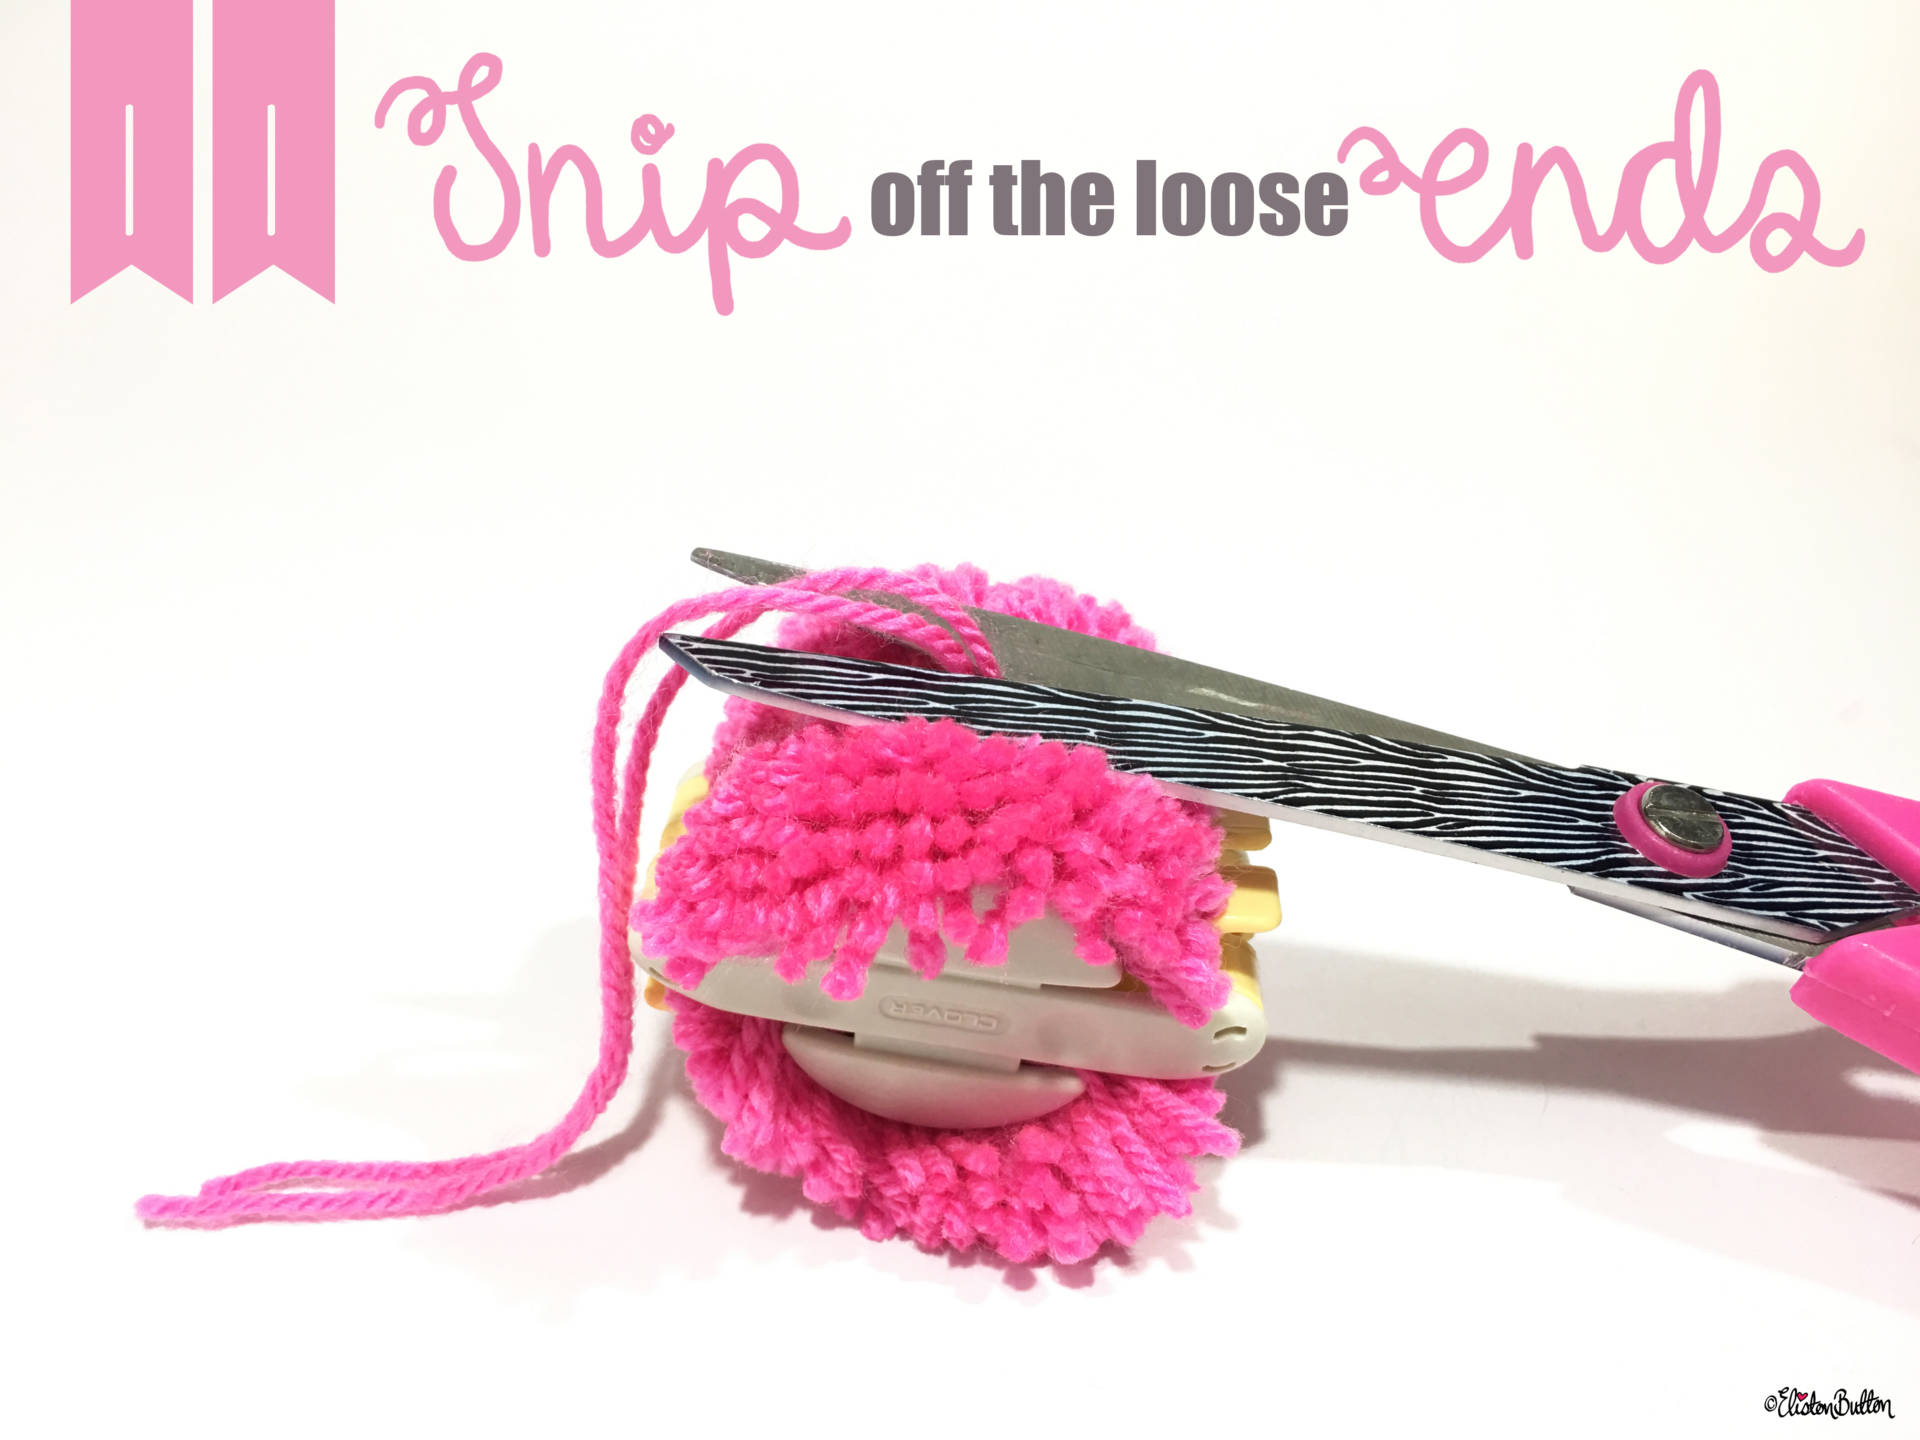 11. Snip Off the Loose Ends. -Tutorial Tuesday - Clover Pom Pom Maker at www.elistonbutton.com - Eliston Button - That Crafty Kid – Art, Design, Craft & Adventure.